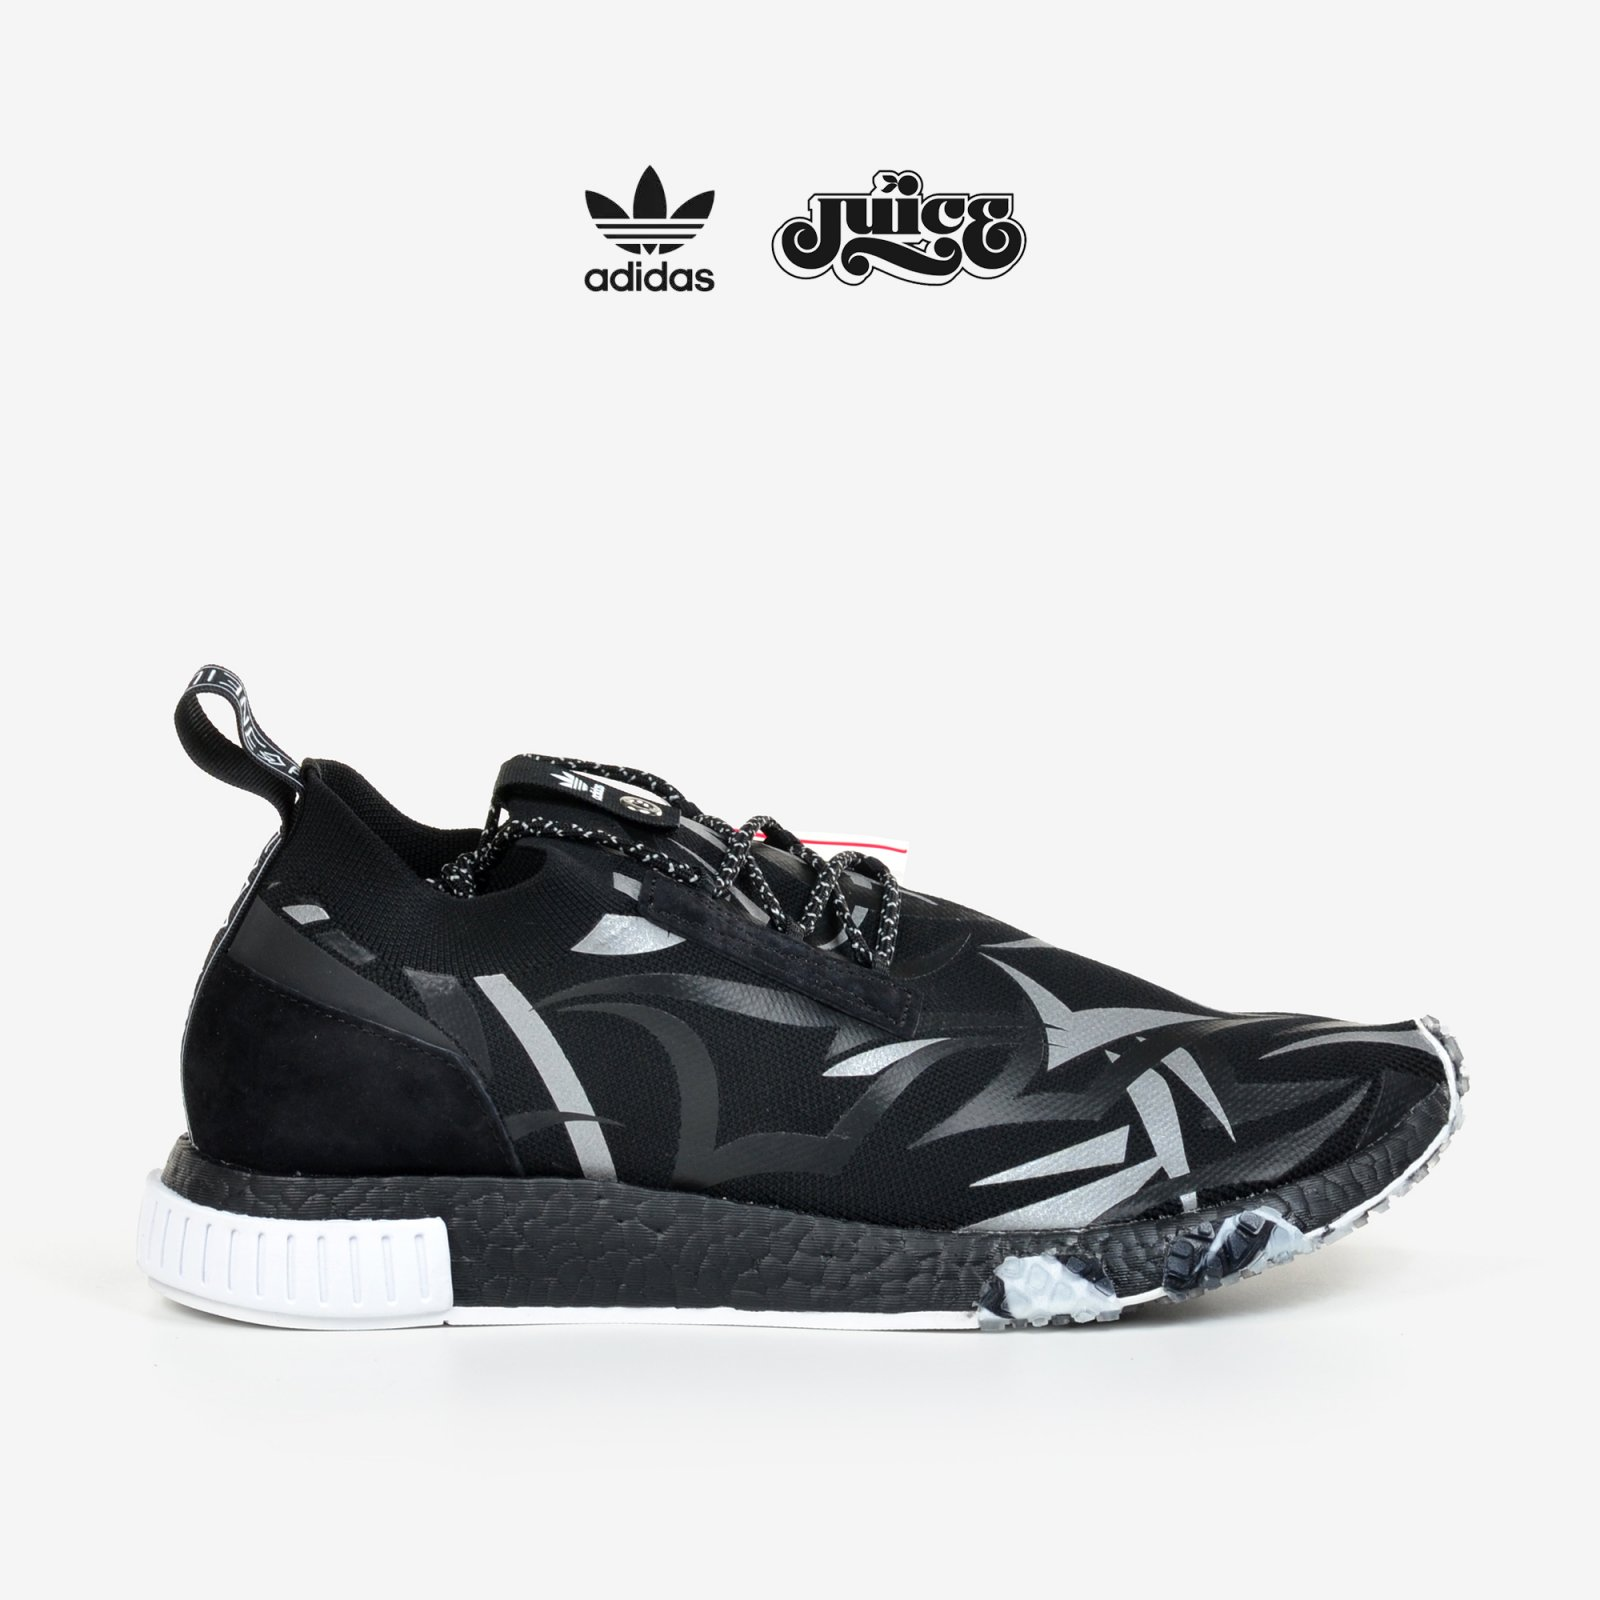 e0106a2647d6a Adidas Consortium X Juice NMD Racer Alienegra White Black with Shoe Bag  DB1777